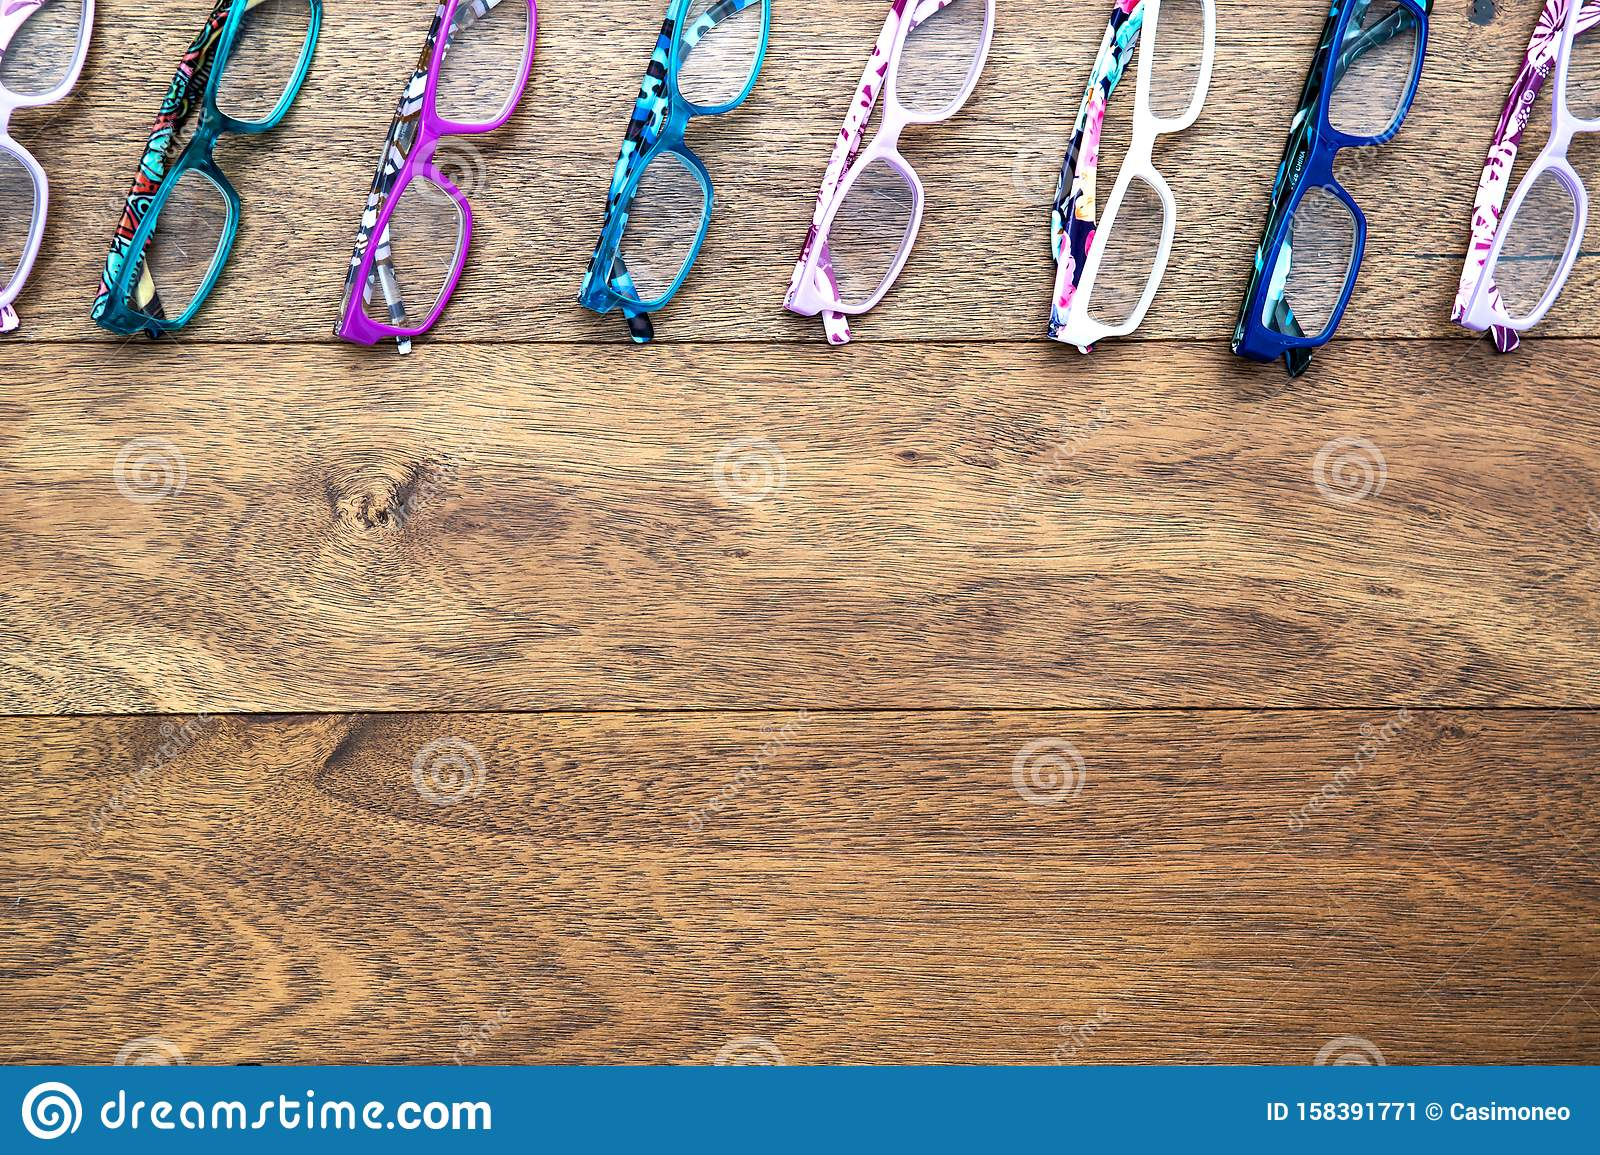 Multiple colored eye glasses lined on wooden deck. Eye Health Concept. Top View with room for text